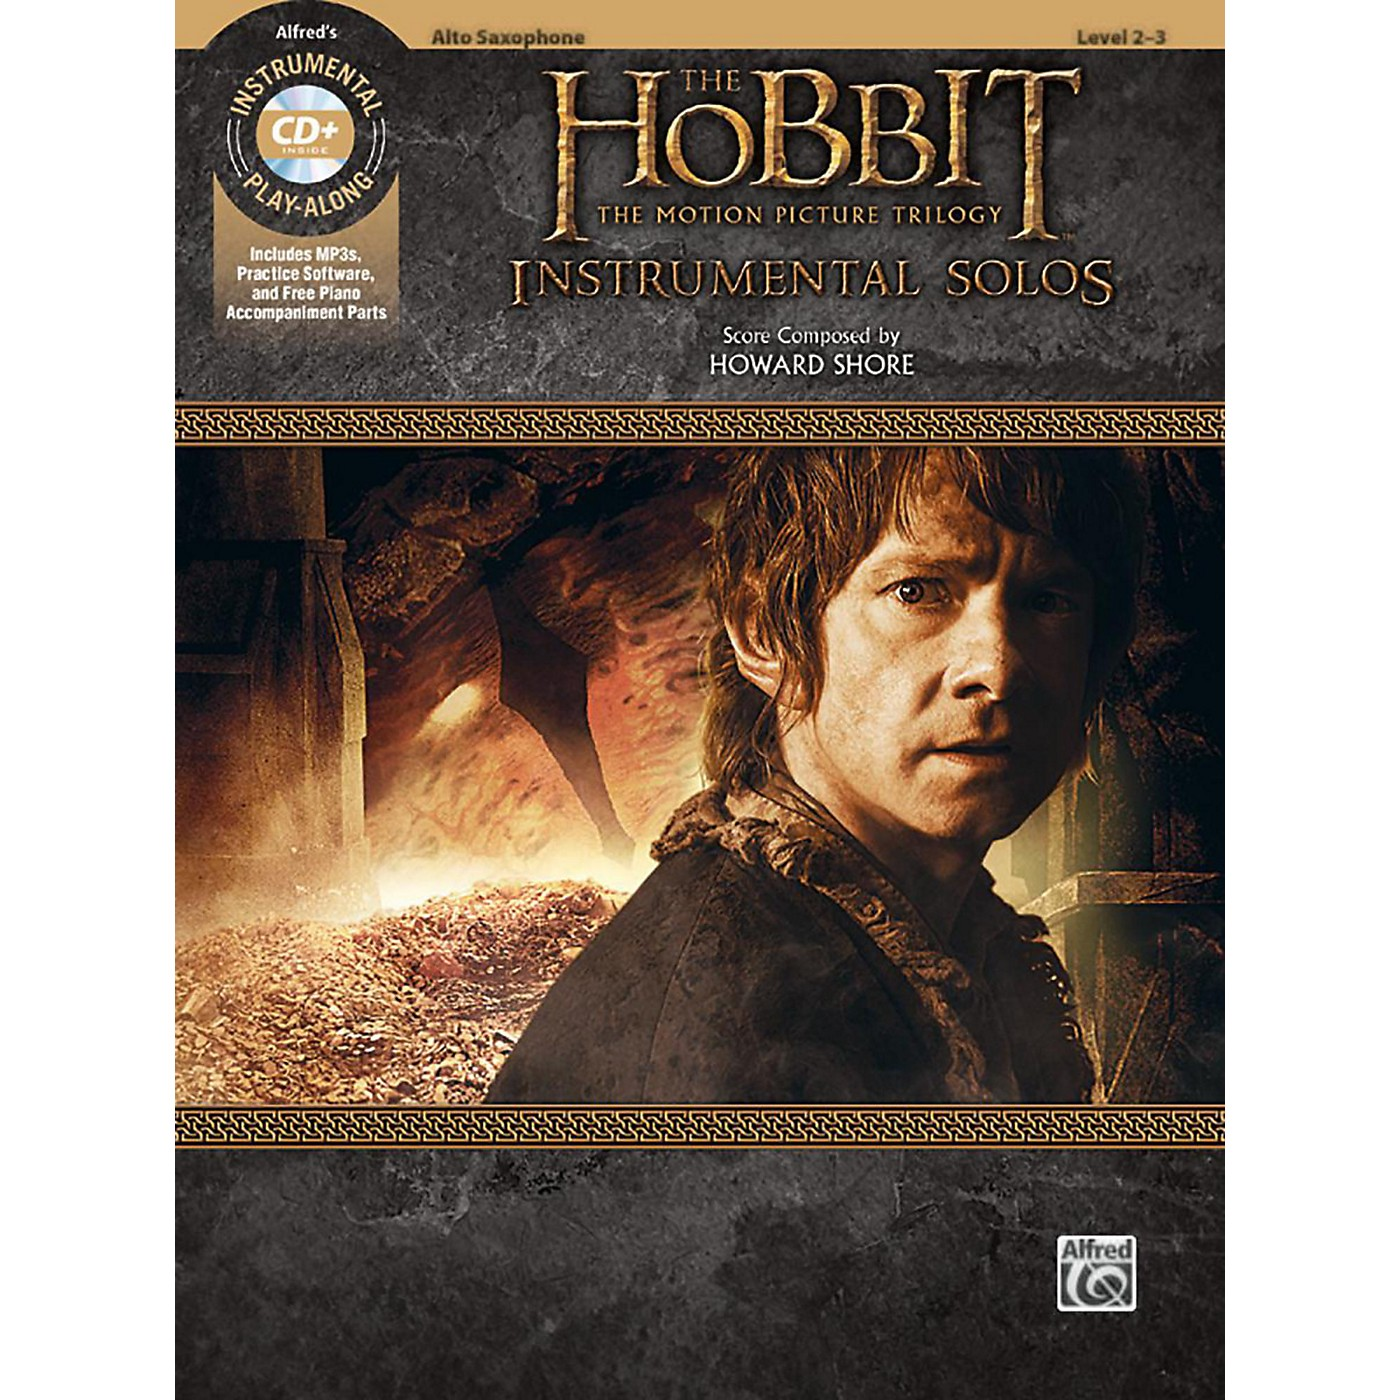 Alfred The Hobbit - The Motion Picture Trilogy Instrumental Solos Alto Sax Book & CD Level 2-3 Songbook thumbnail